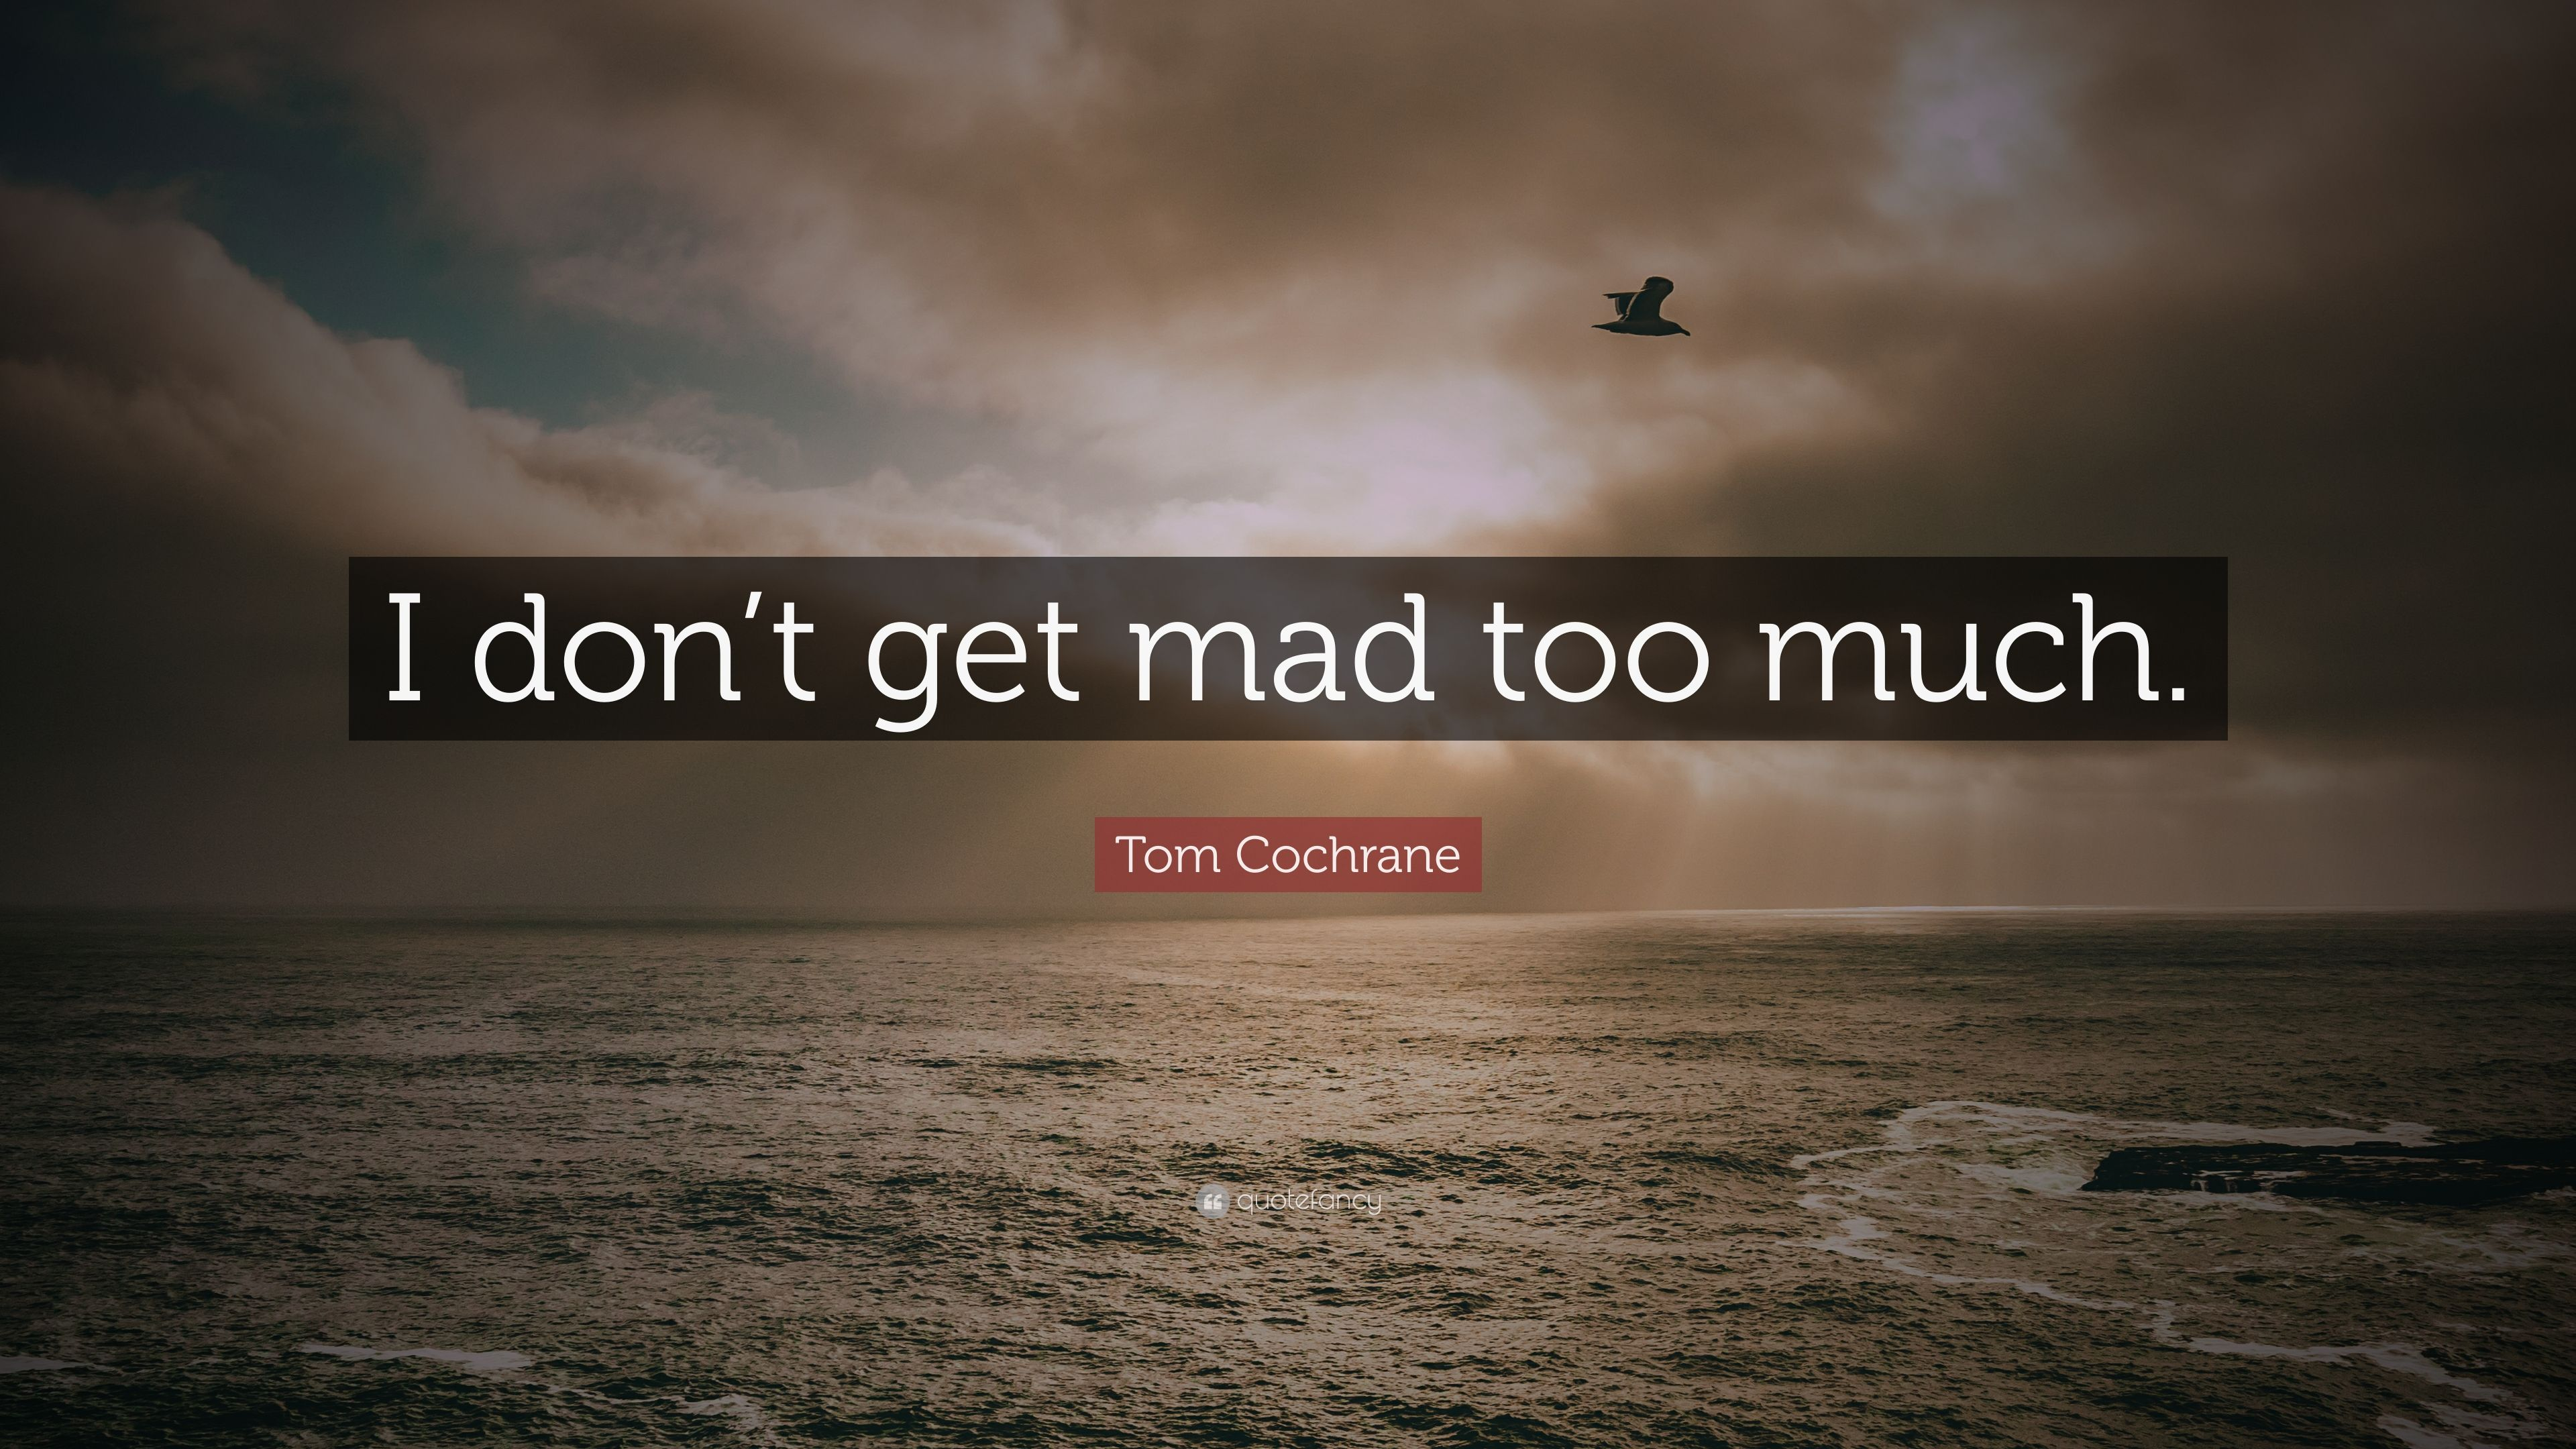 Tom Cochrane Quote: U201cI Donu0027t Get Mad Too Much.u201d